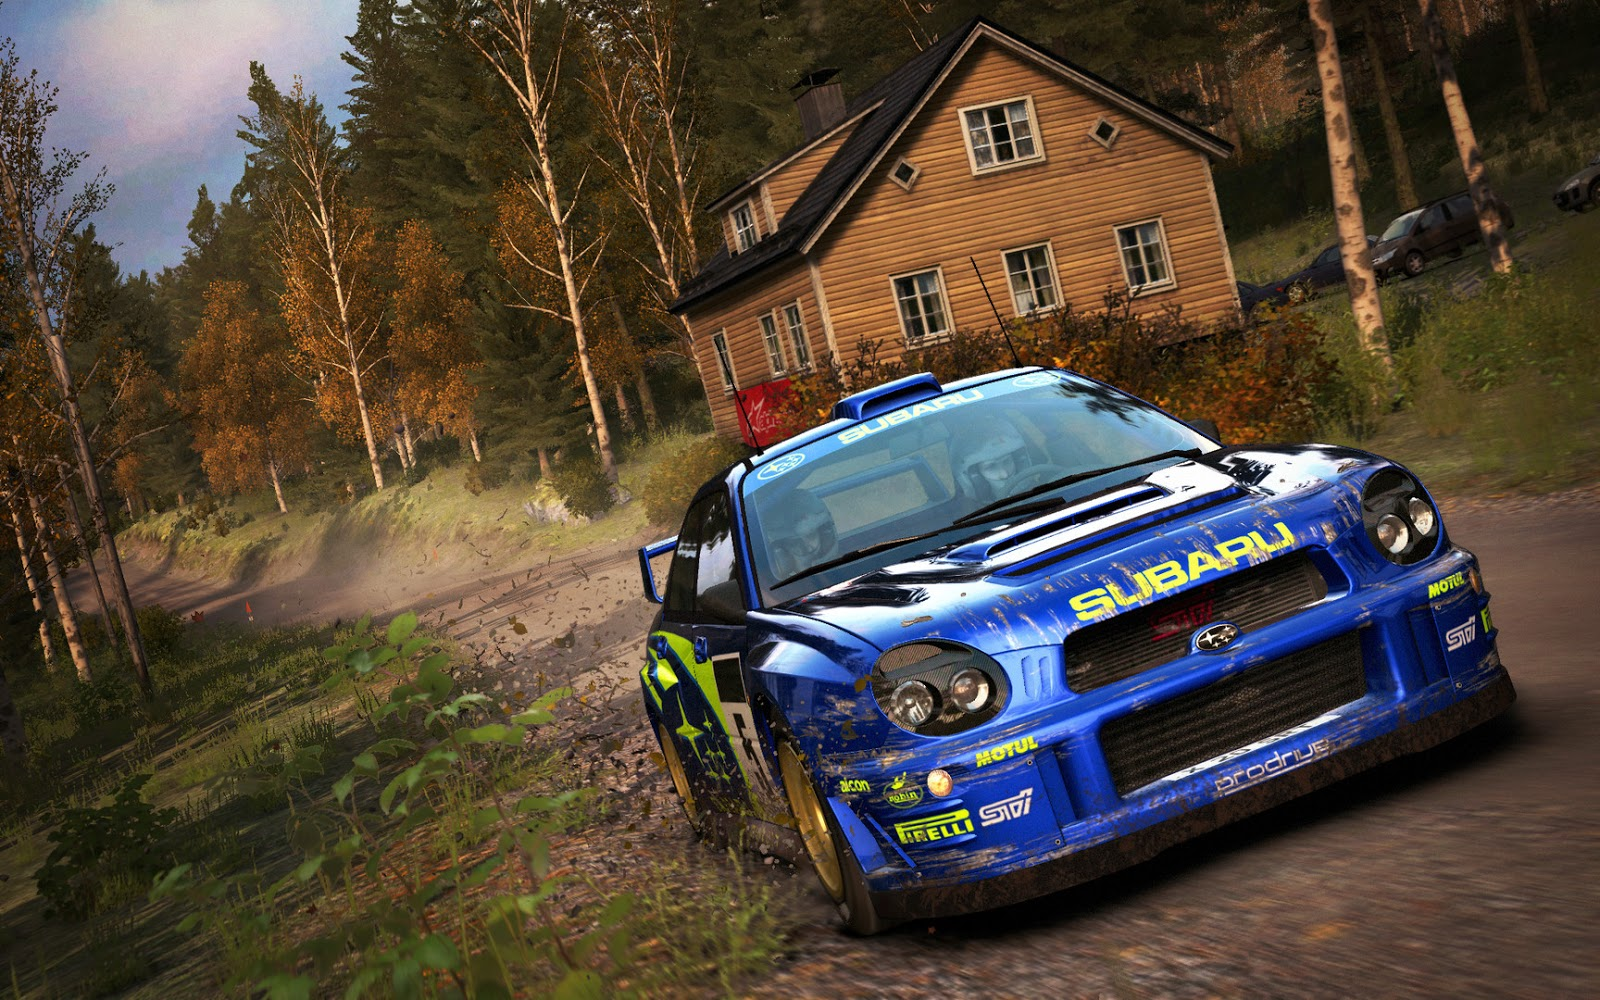 DiRT Rally ESPAÑOL PC Descargar Full (PROPHET) + REPACK 4 DVD5 (JPW) 10